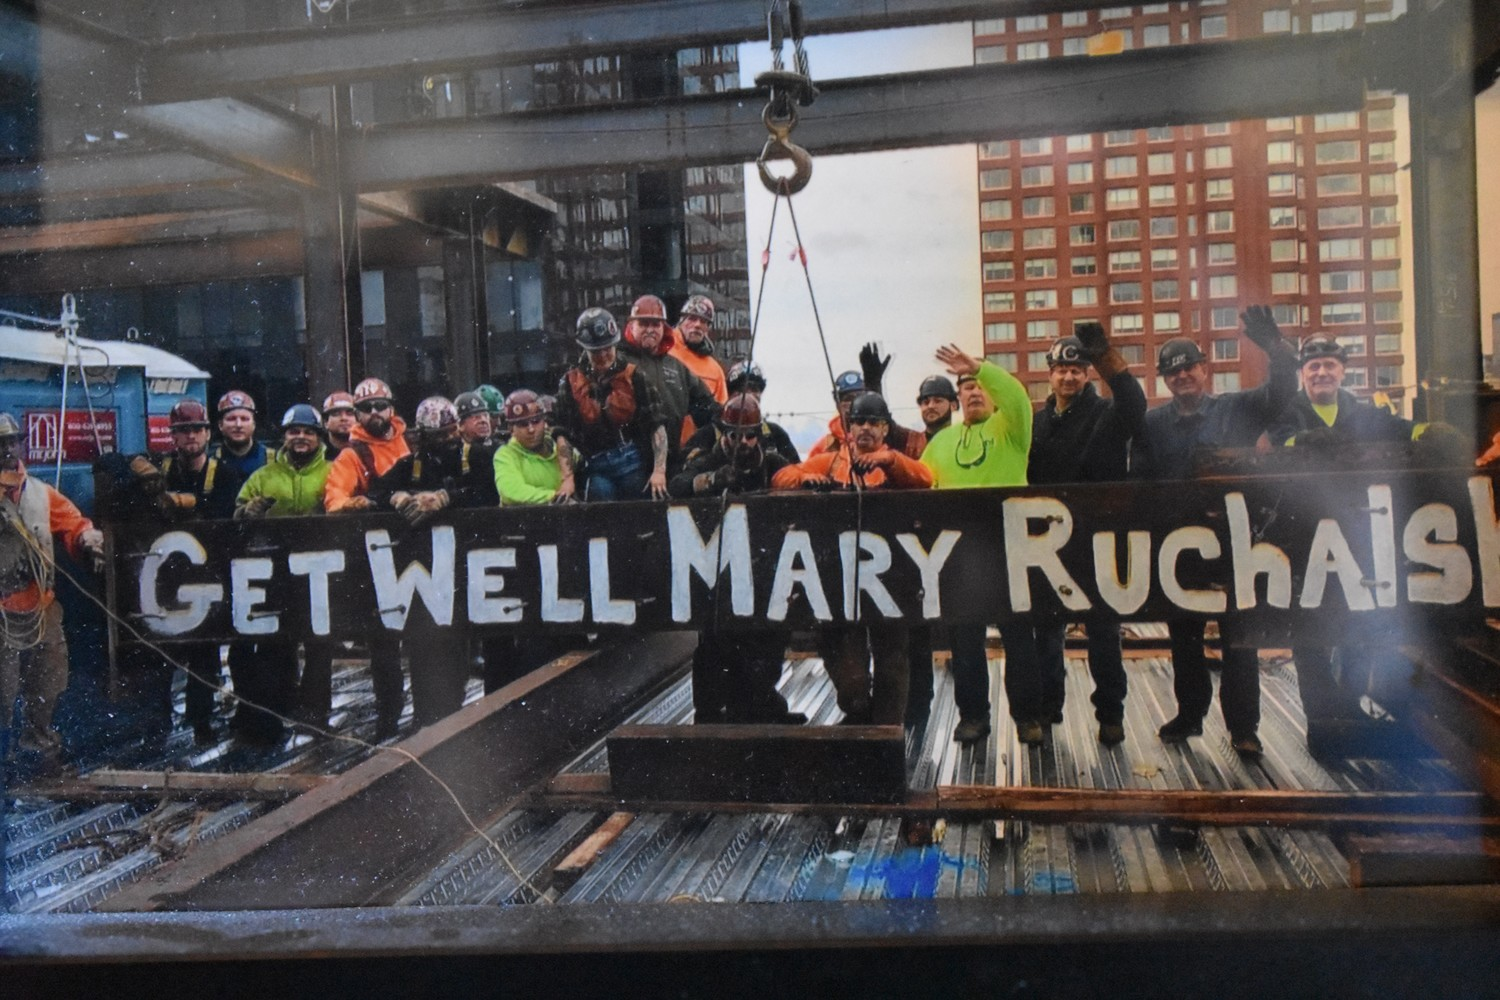 People in Rockville Centre and beyond showed support to the Ruchalski family while Mary was sick. Last year, iron workers painted this message on the beam of a building they were constructing in Manhattan.